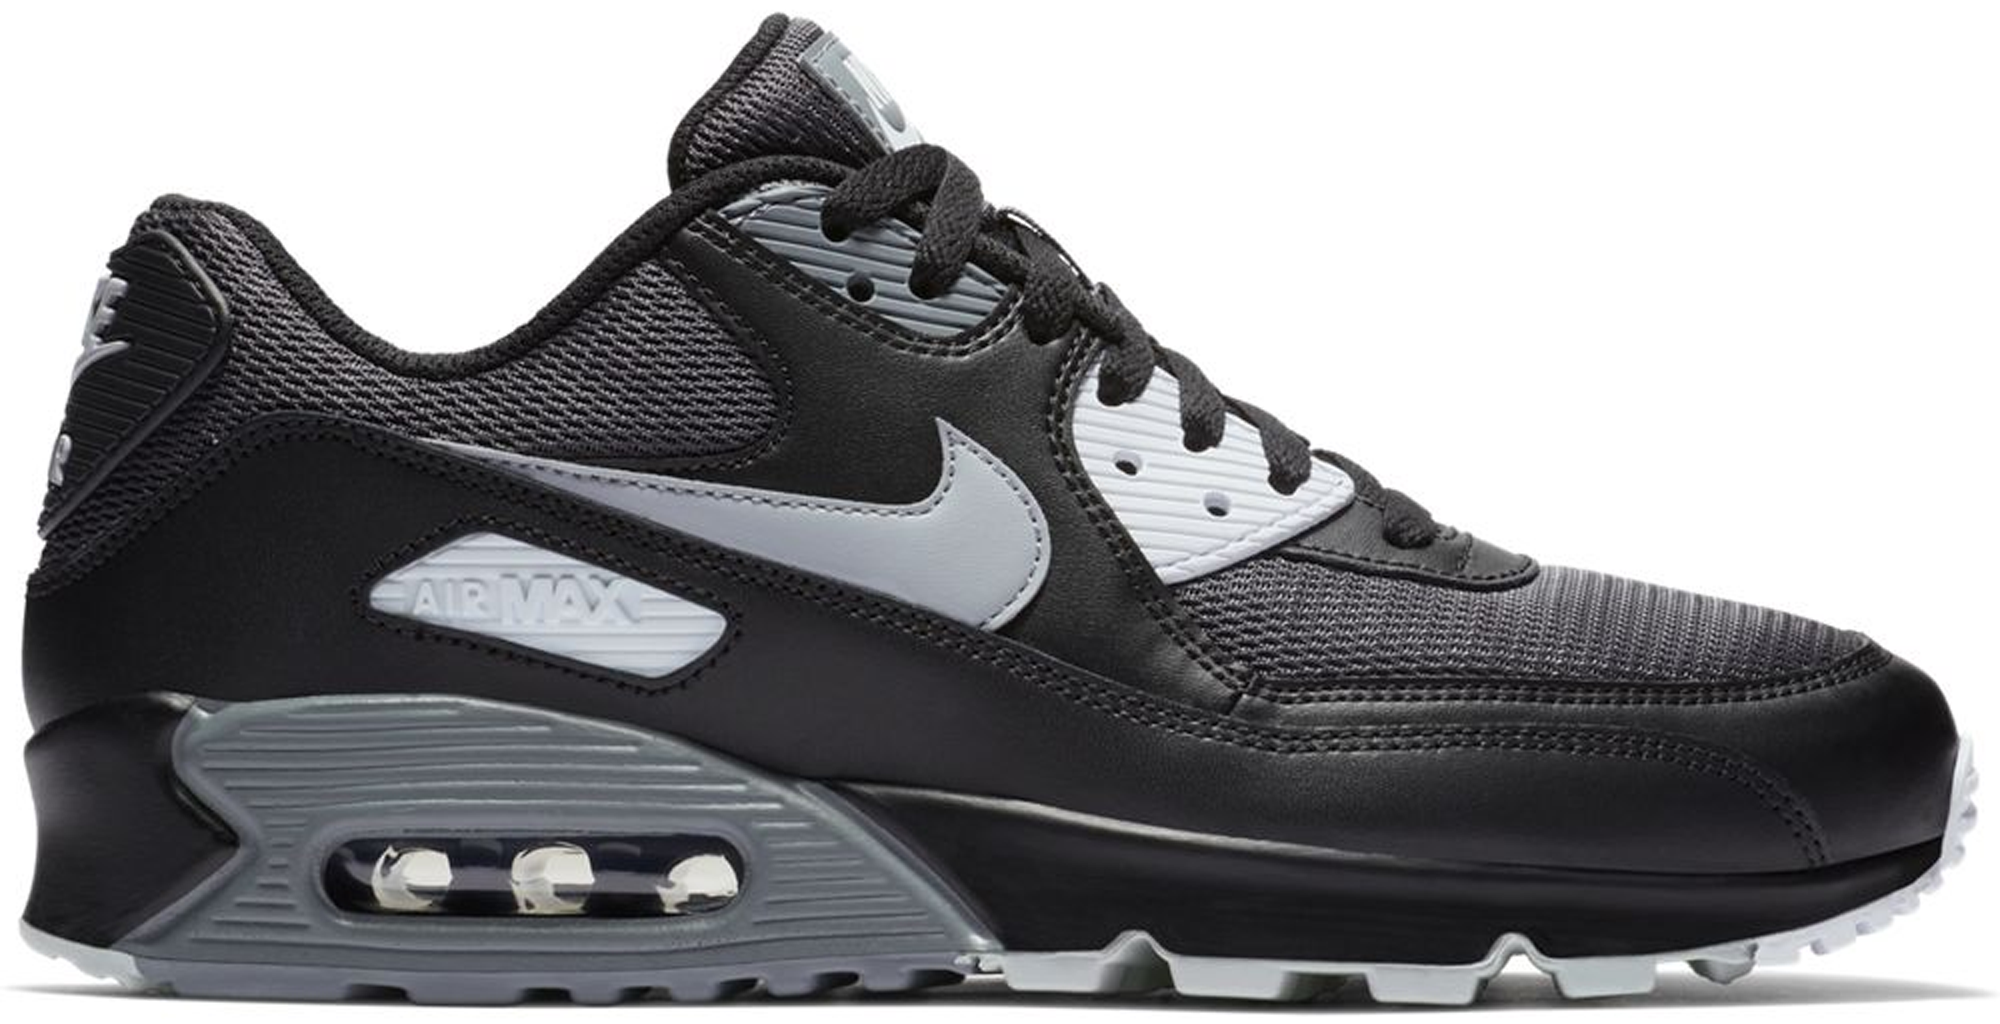 new arrival 85fca f3d64 HypeAnalyzer · Air Max 90 Black Wolf Grey Dark Grey